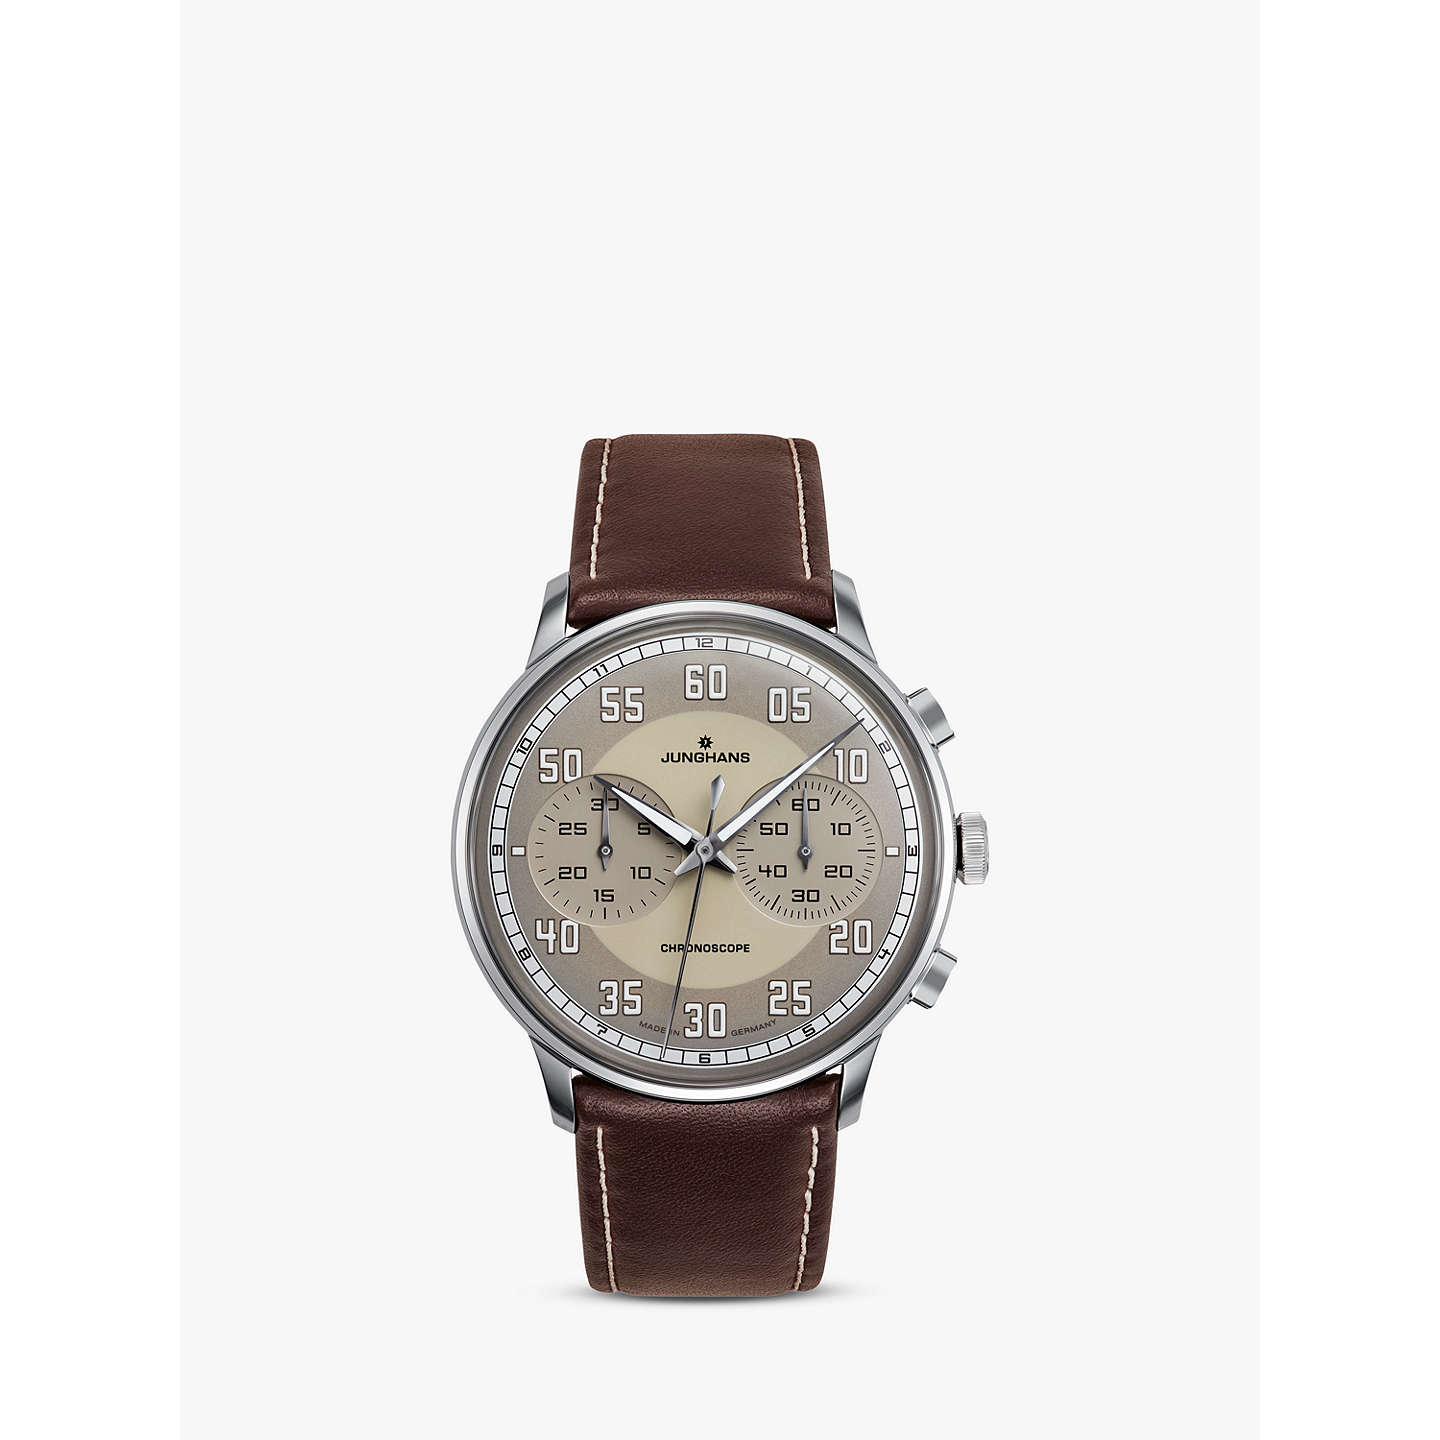 BuyJunghans 027/3684.00 Men's Meister Driver Chronoscope Leather Strap Watch, Brown/Grey Online at johnlewis.com